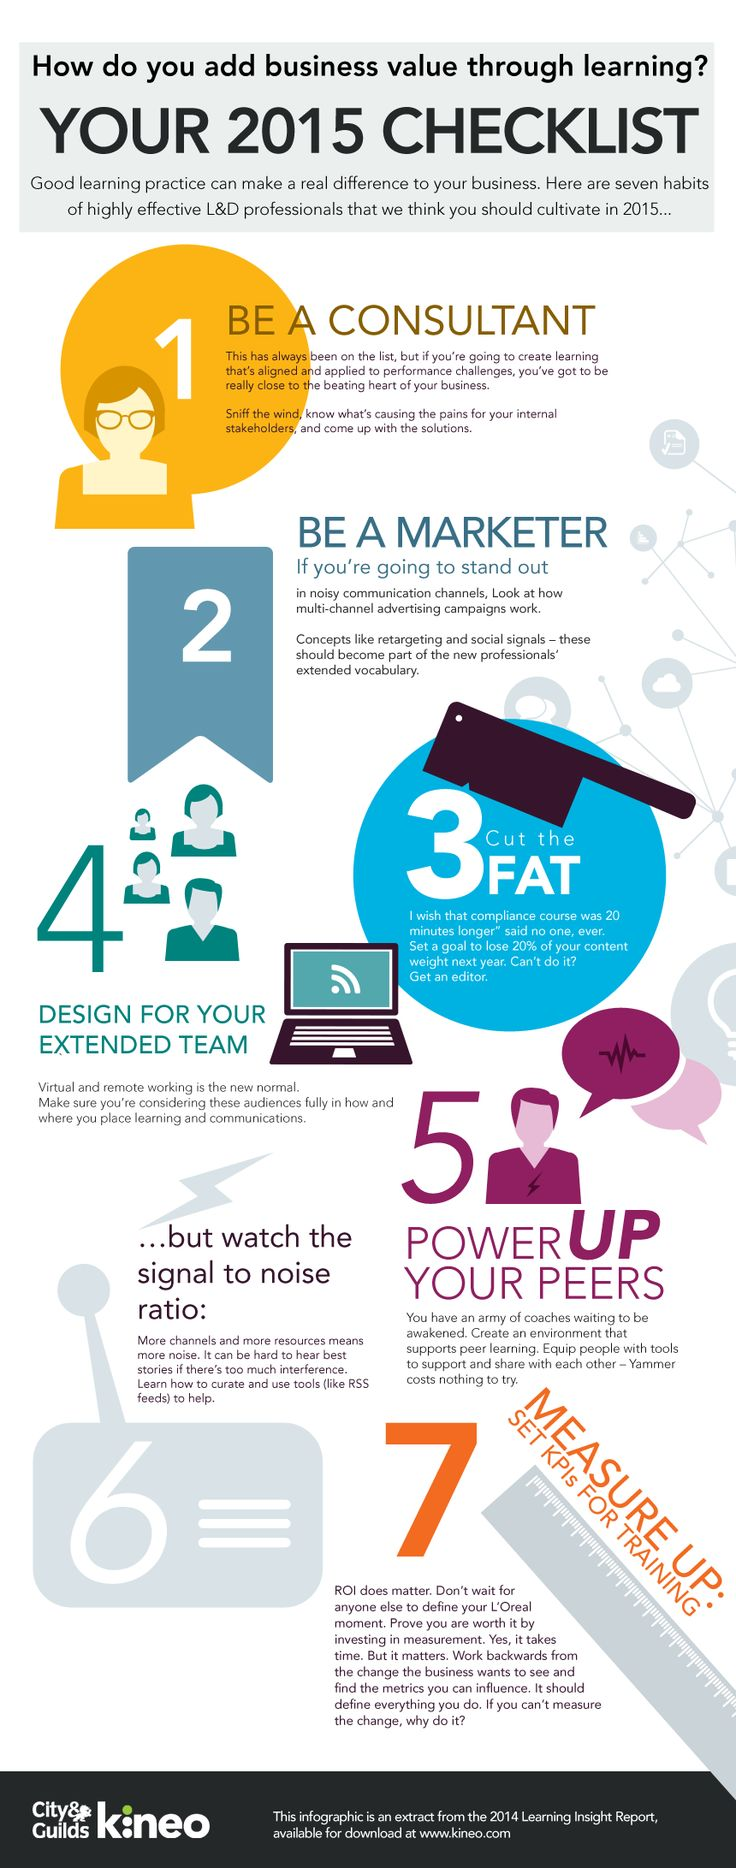 E learning poster designs - 7 Things To Improve L D Performance In 2015 Learning Elearning